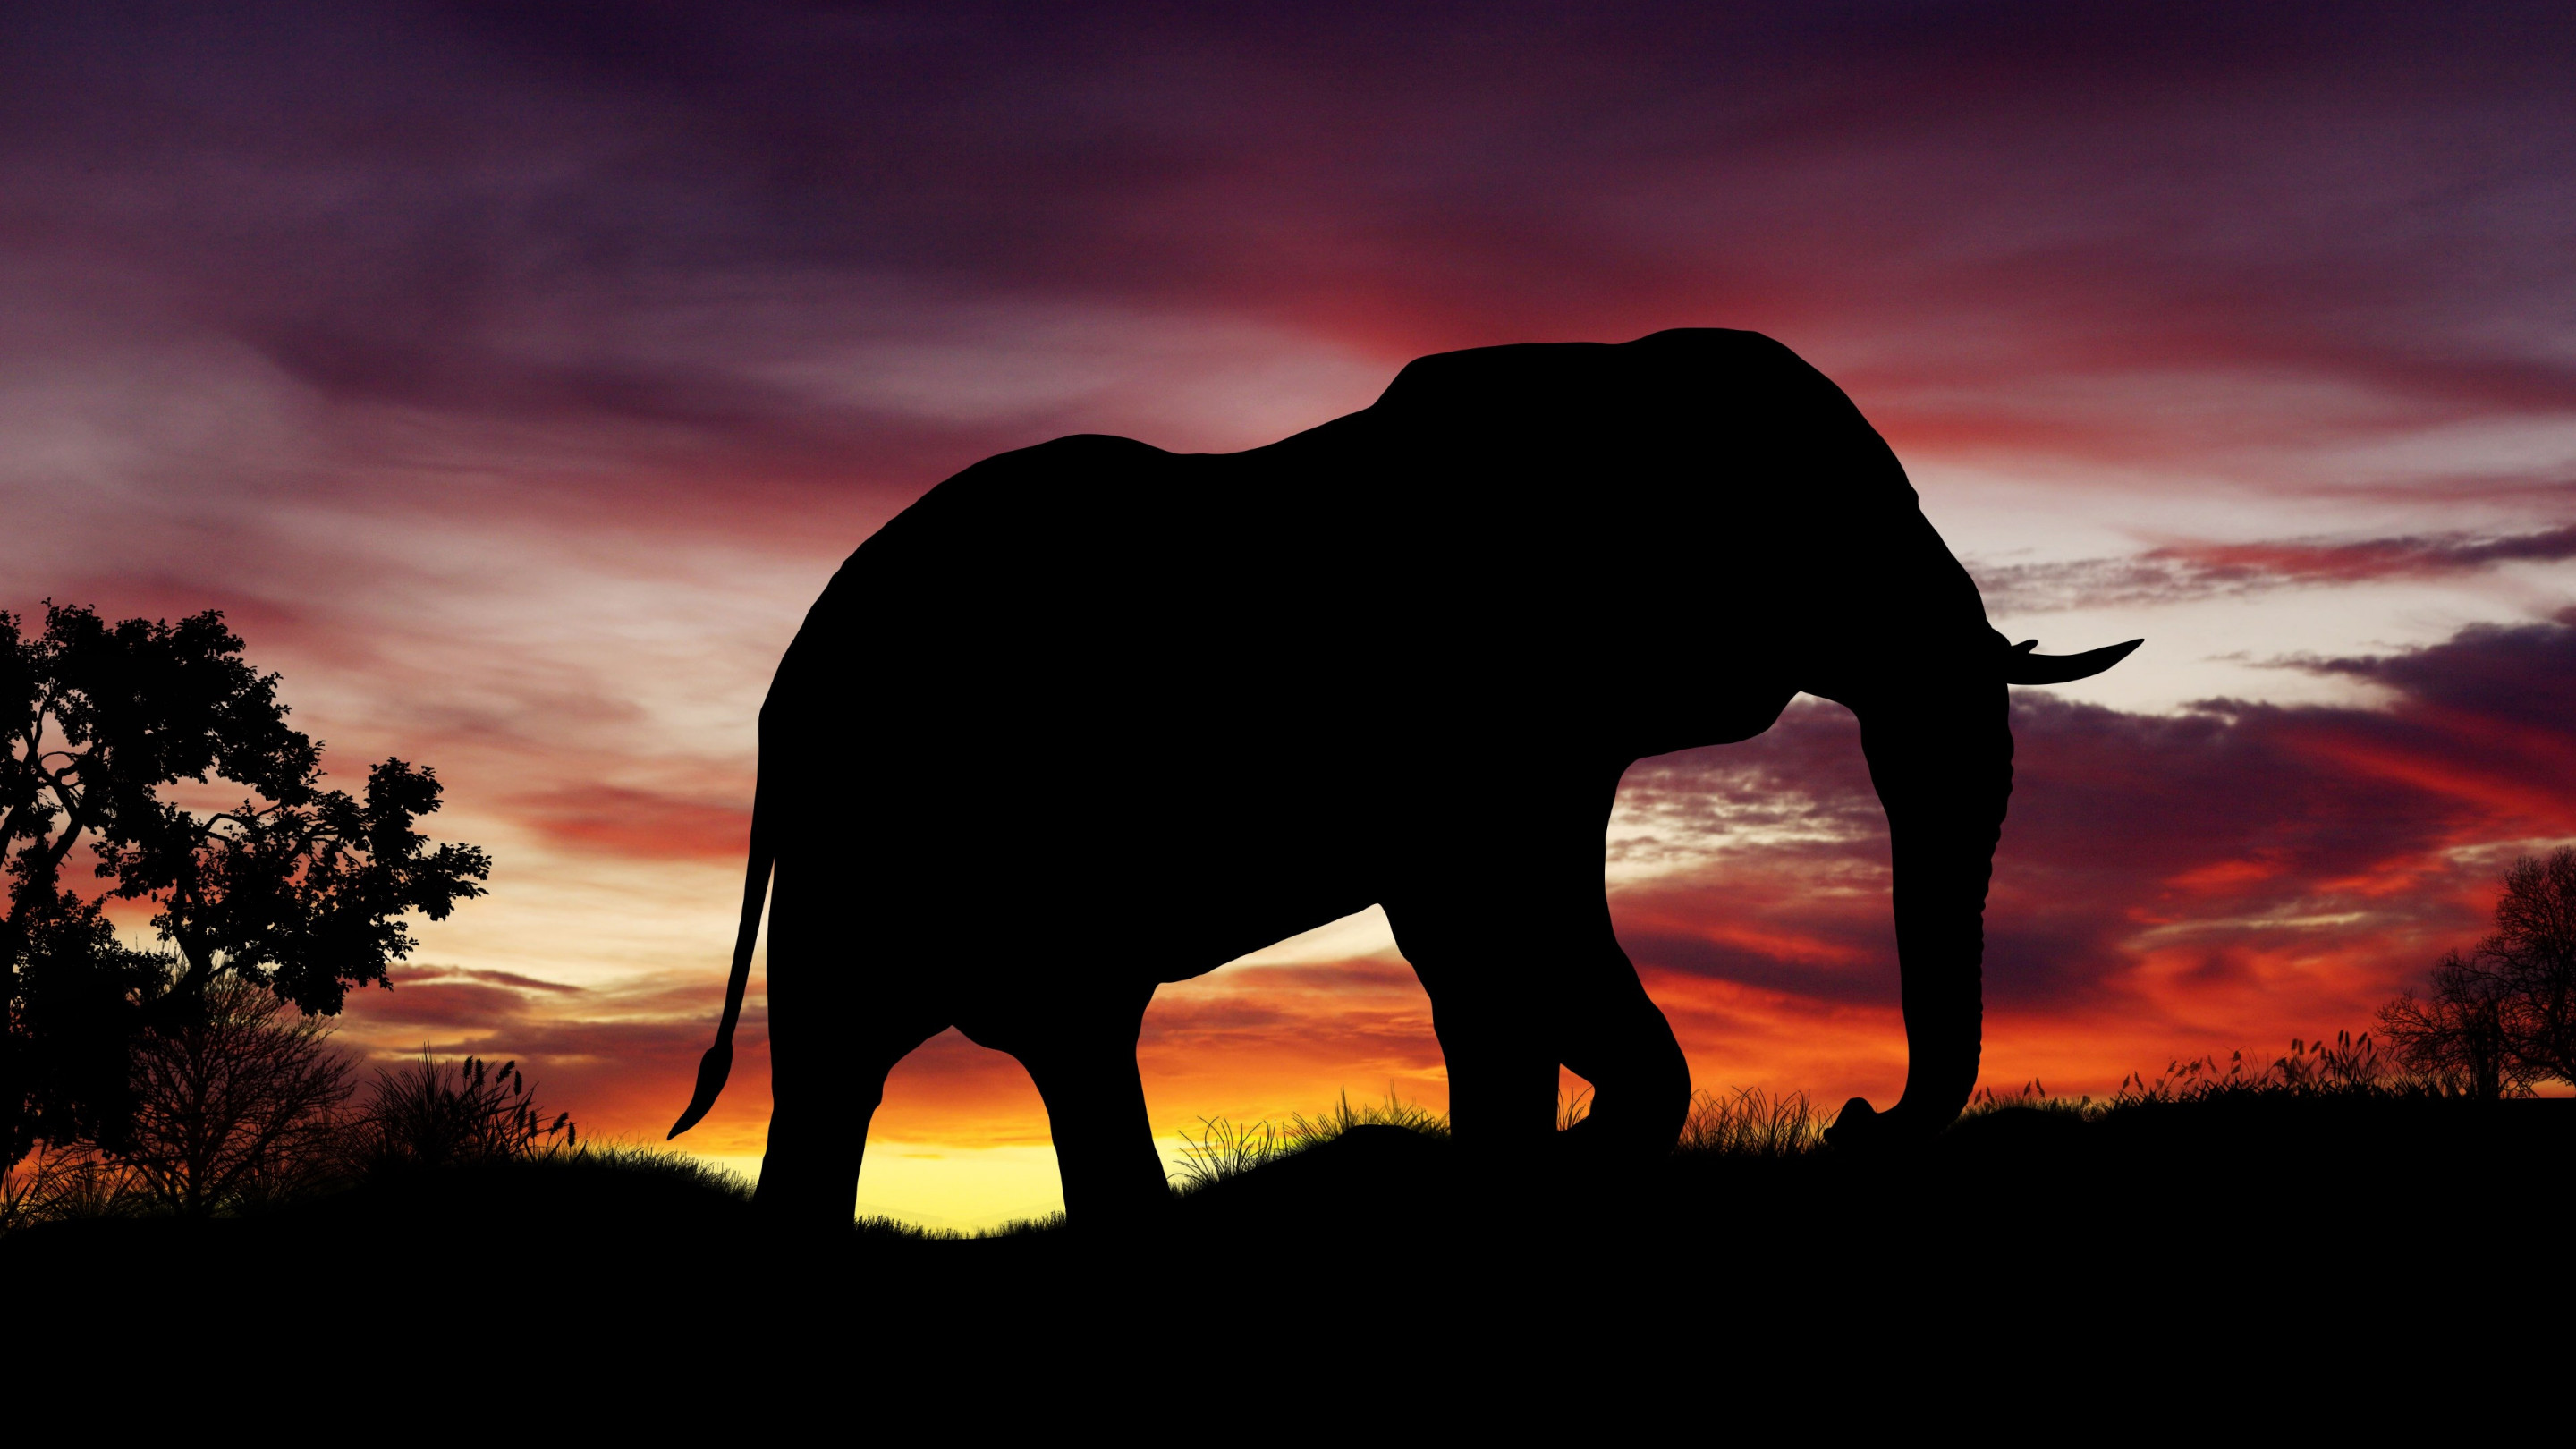 Elephant silhouette | 2880x1620 wallpaper